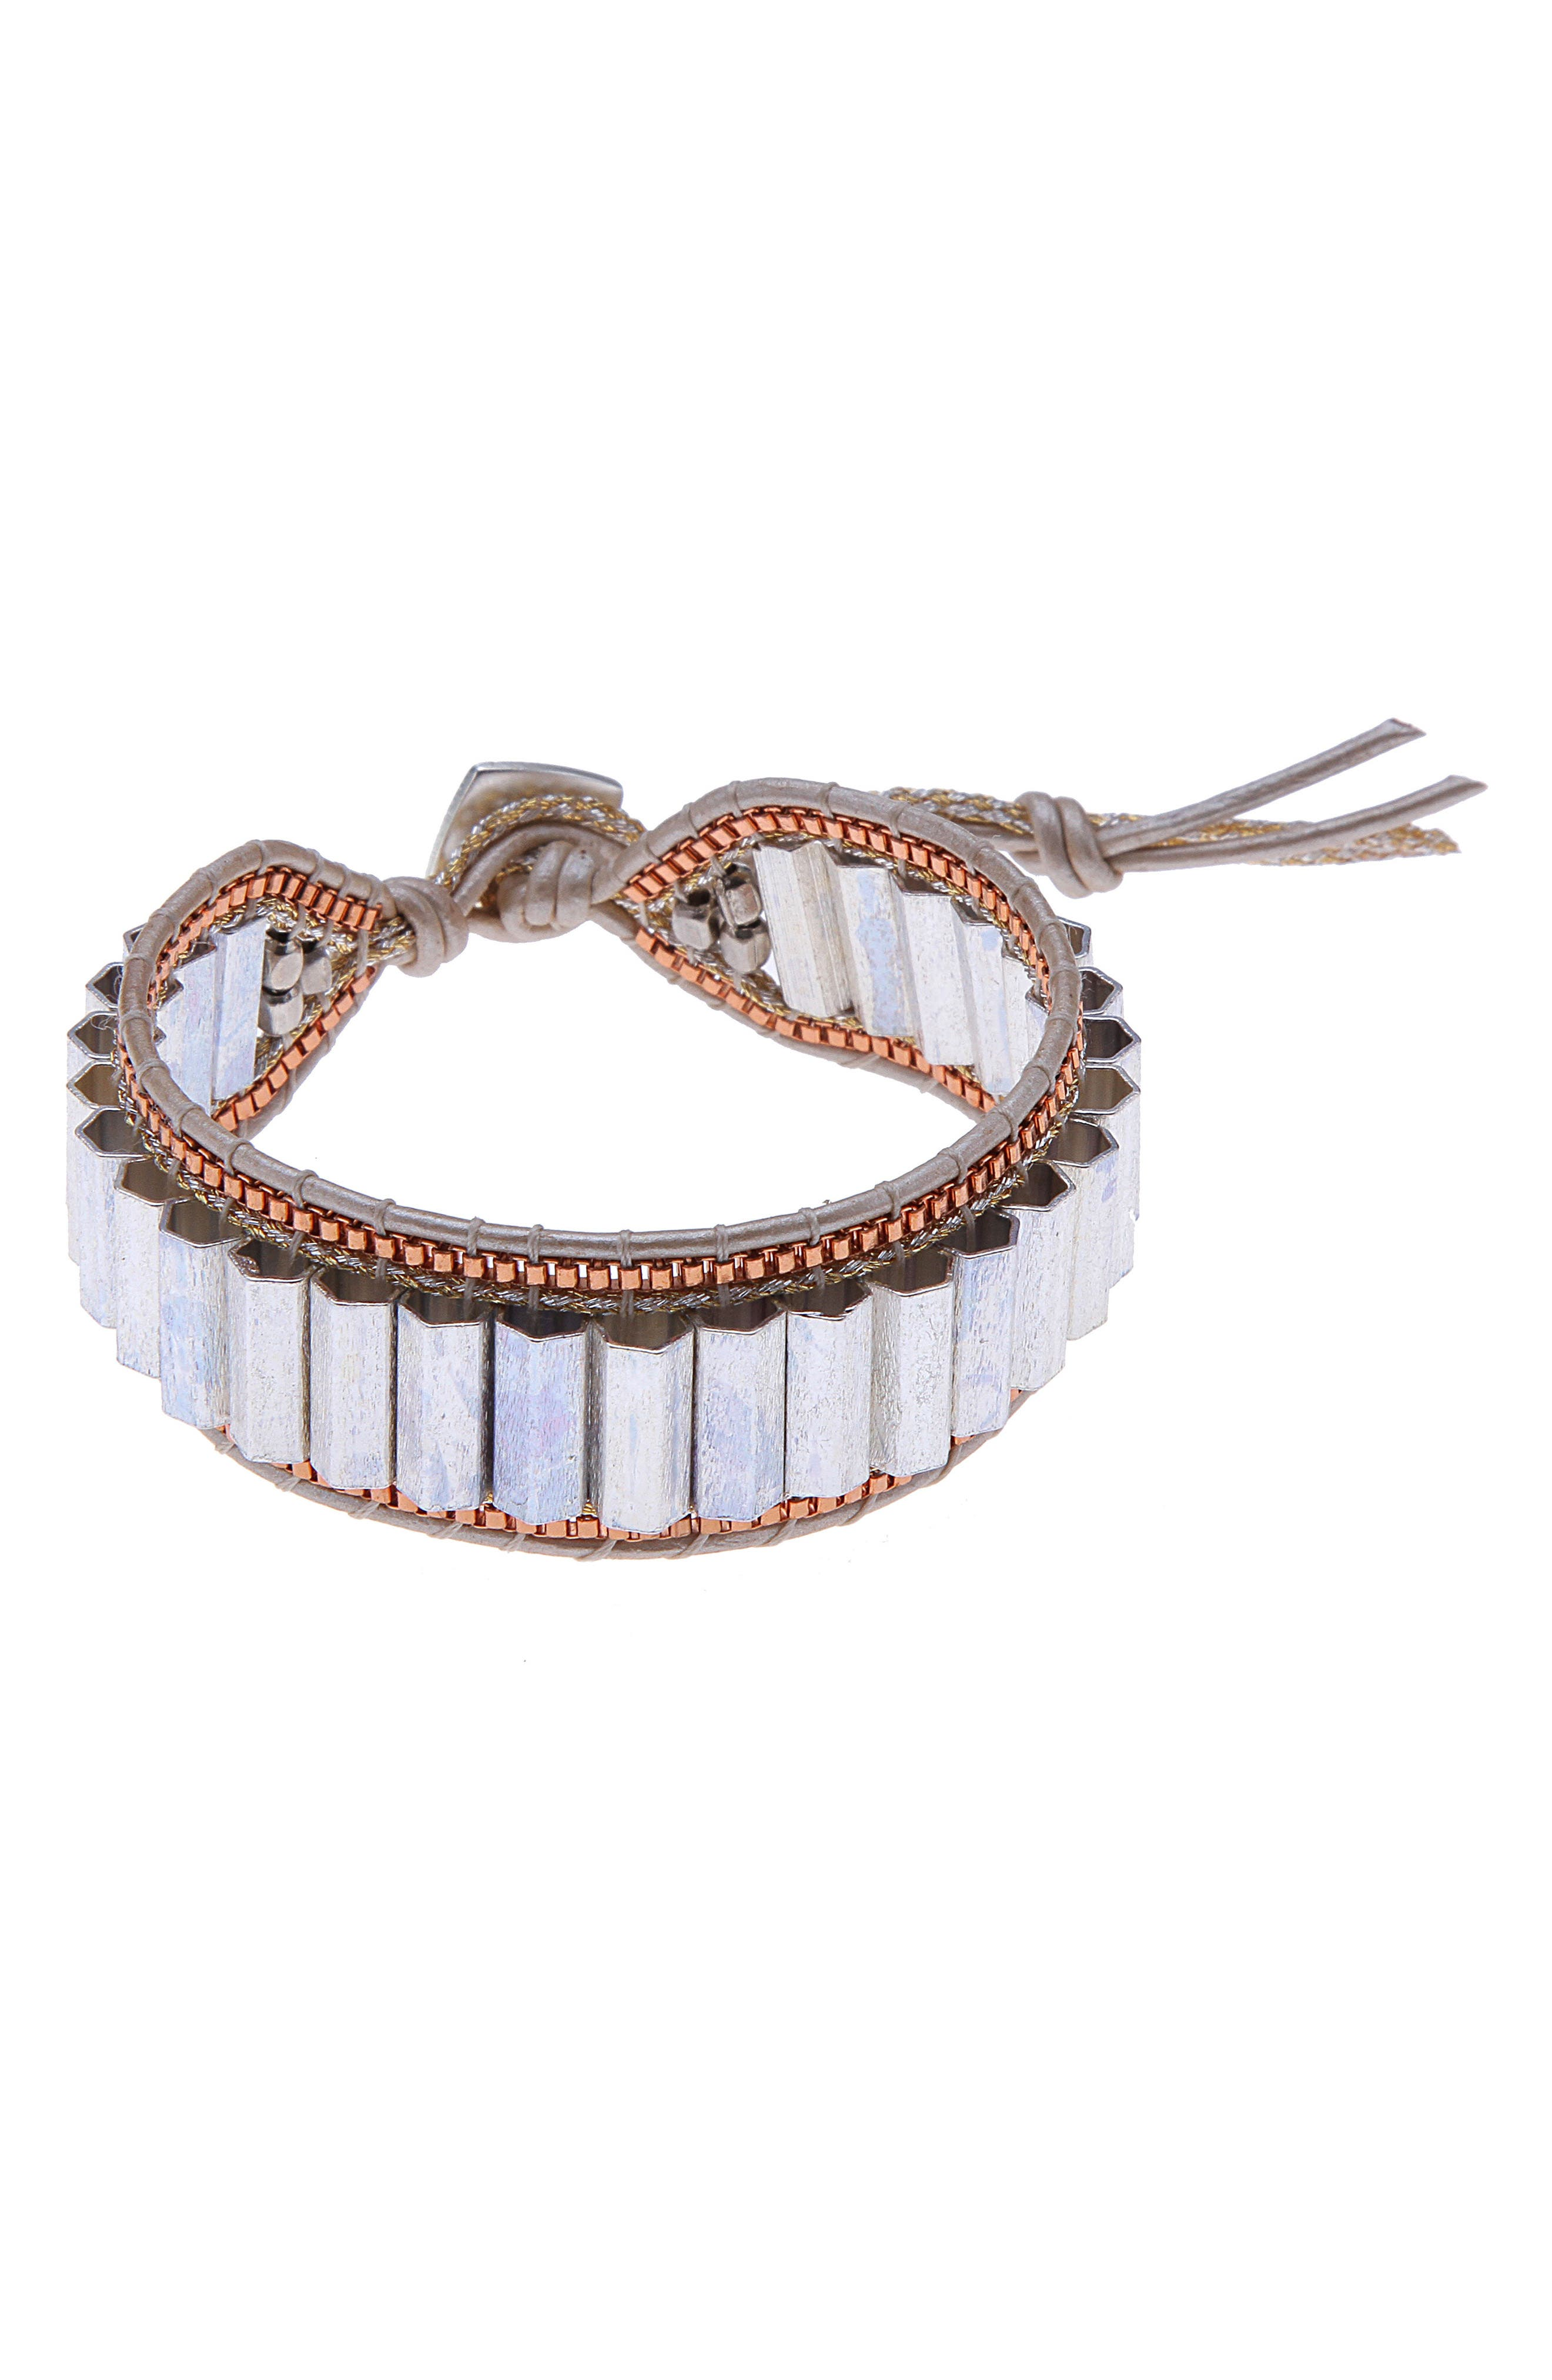 Leather & Metal Bead Bracelet,                             Main thumbnail 1, color,                             Silver